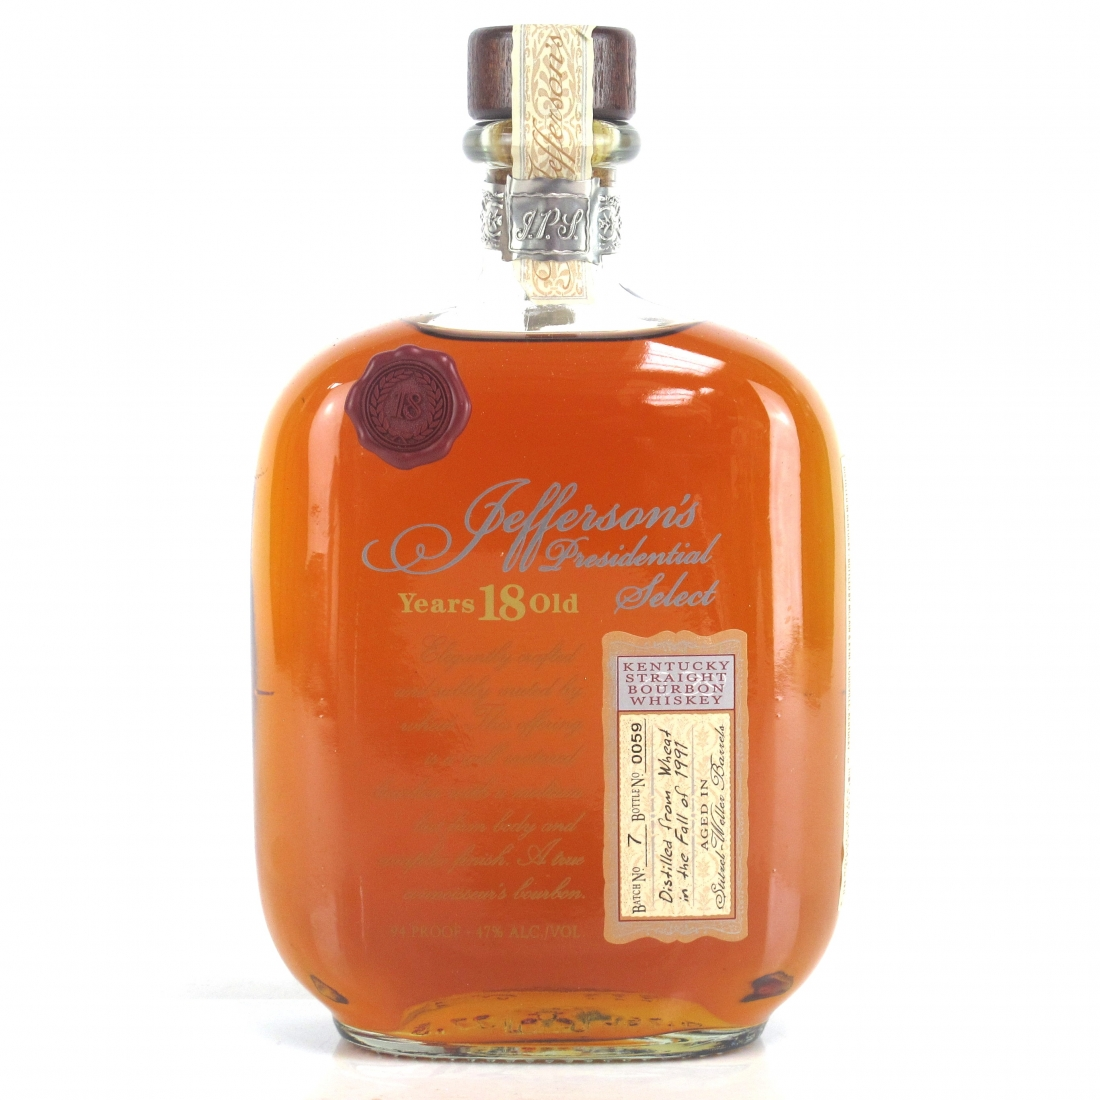 Jefferson's 1991 Presidential Select 18 Year Old